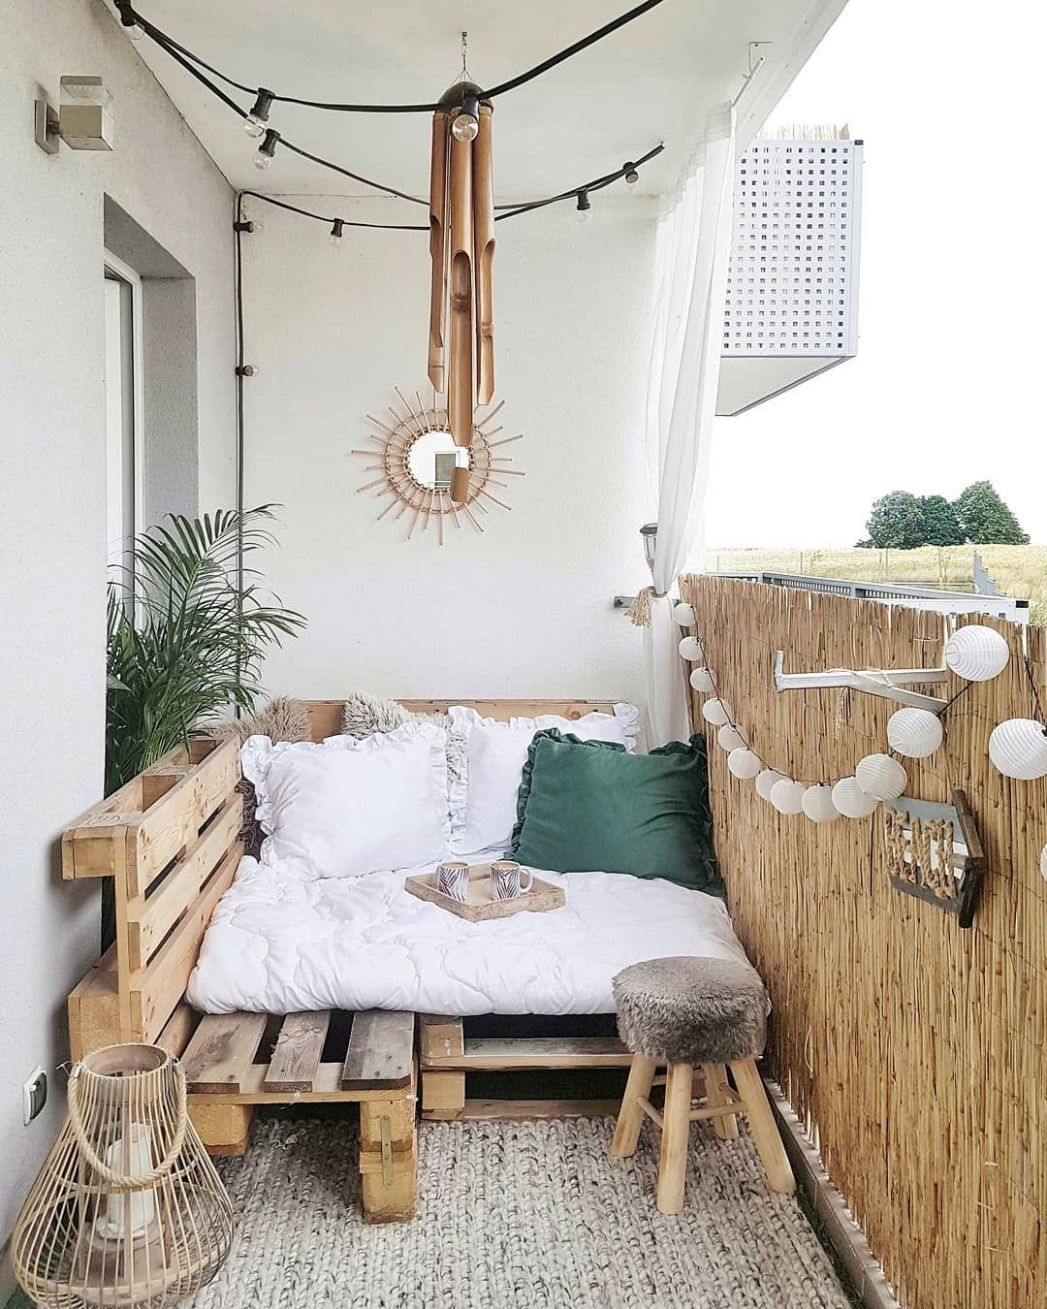 9 Ways to Make the Most of Your Tiny Apartment Balcony